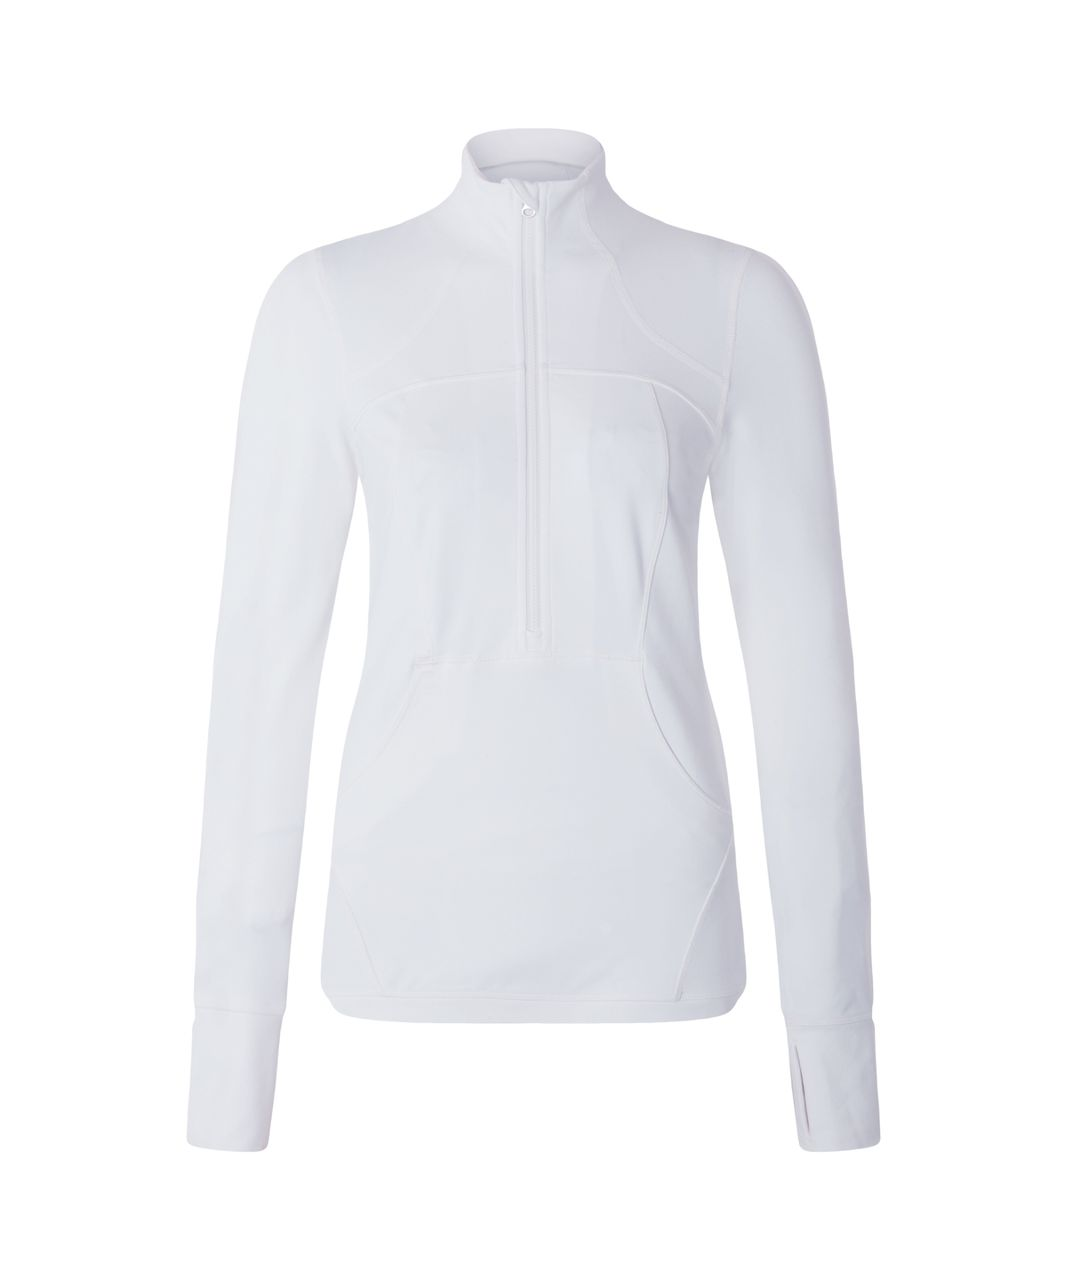 Lululemon Define Pullover - White (First Release)